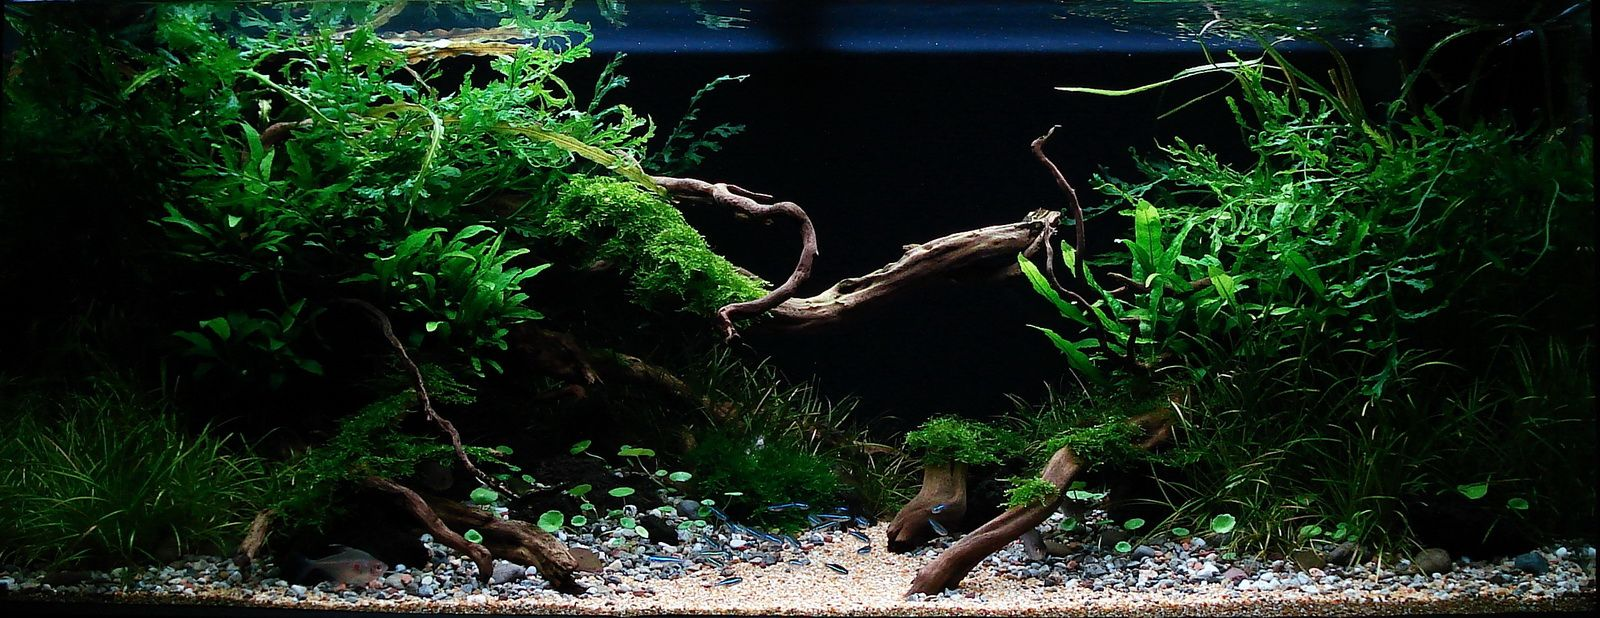 Pin on AquaScaping